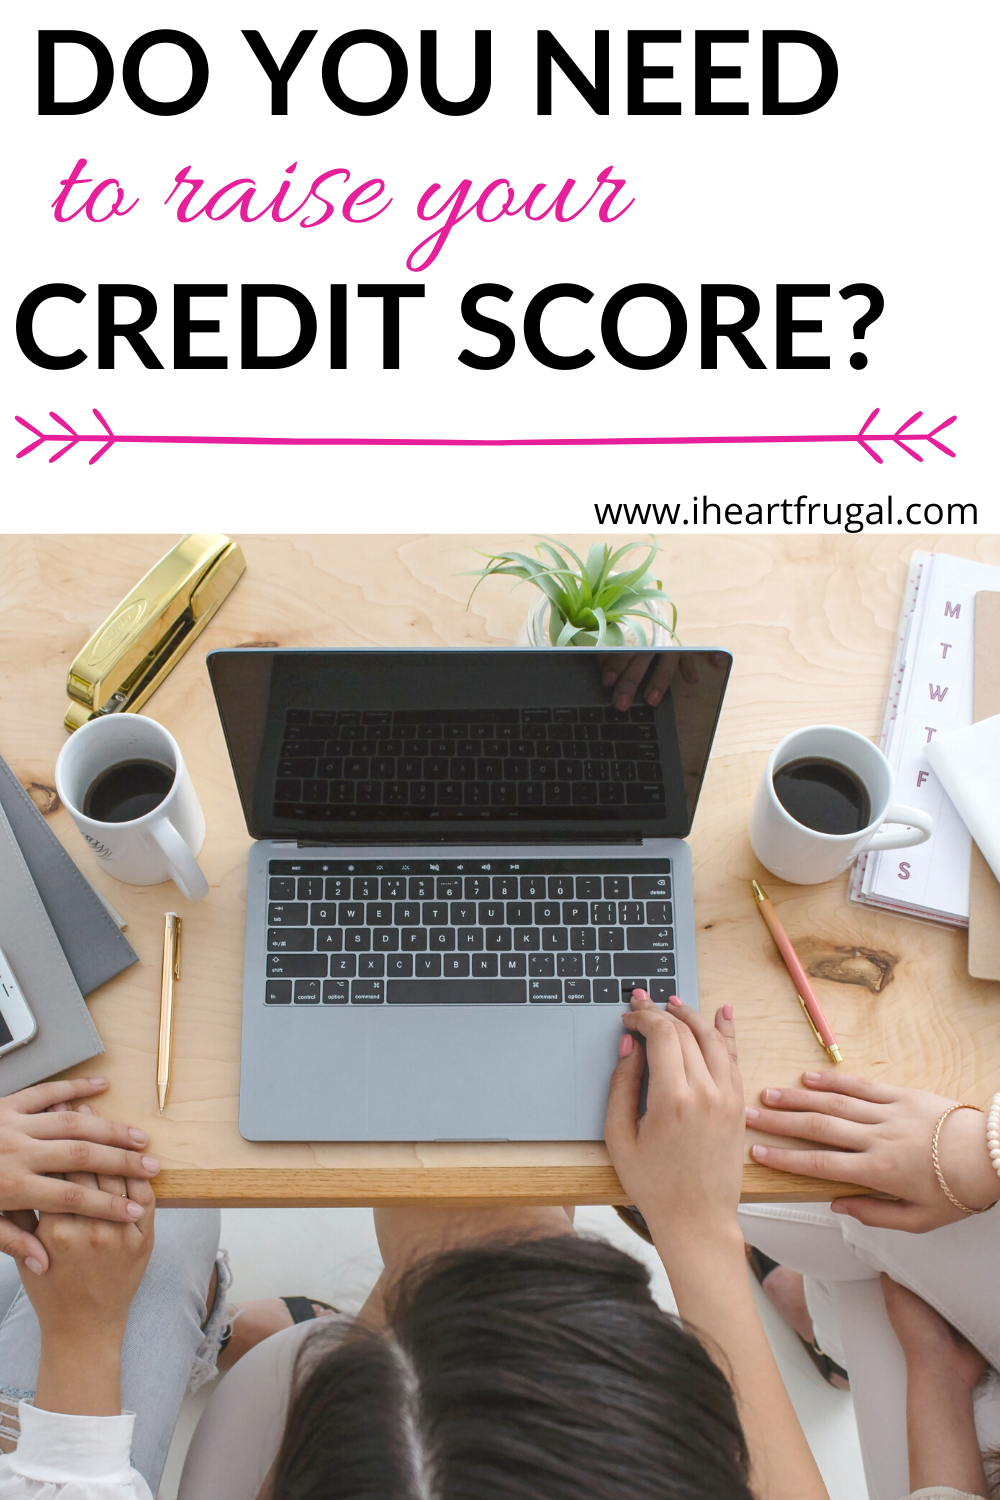 How to Raise Your Credit Score by 200 Points. Are you struggling financially? Do you need to repair your credit score? This post will help you learn how to raise your credit score and get your personal finances in order. #personalfinances #creditrepair #finances #budgets